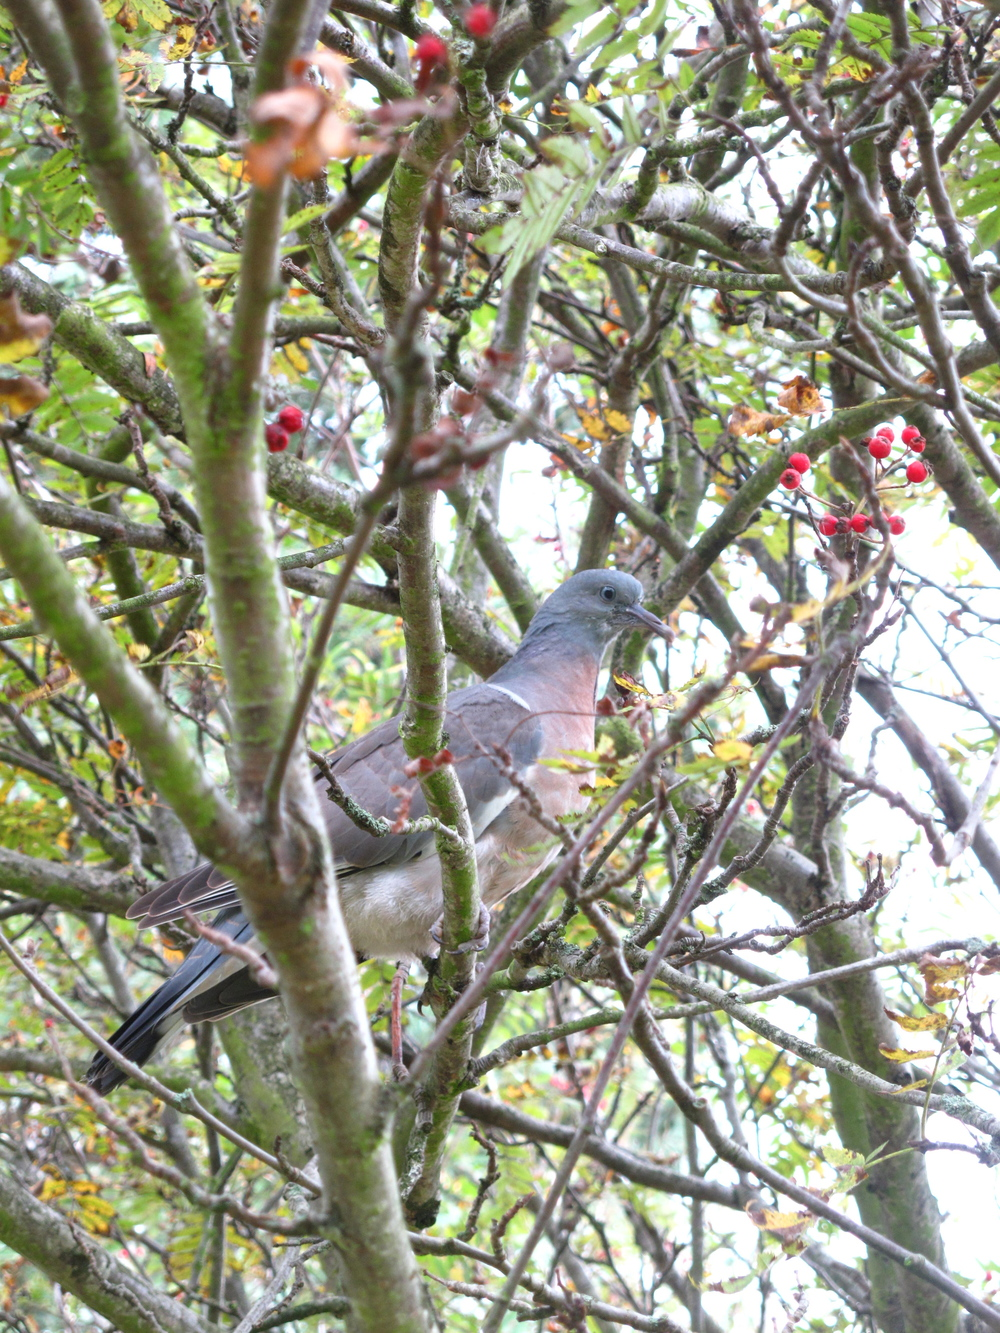 Pigeon in a tree in Dr. Neil's Garden.